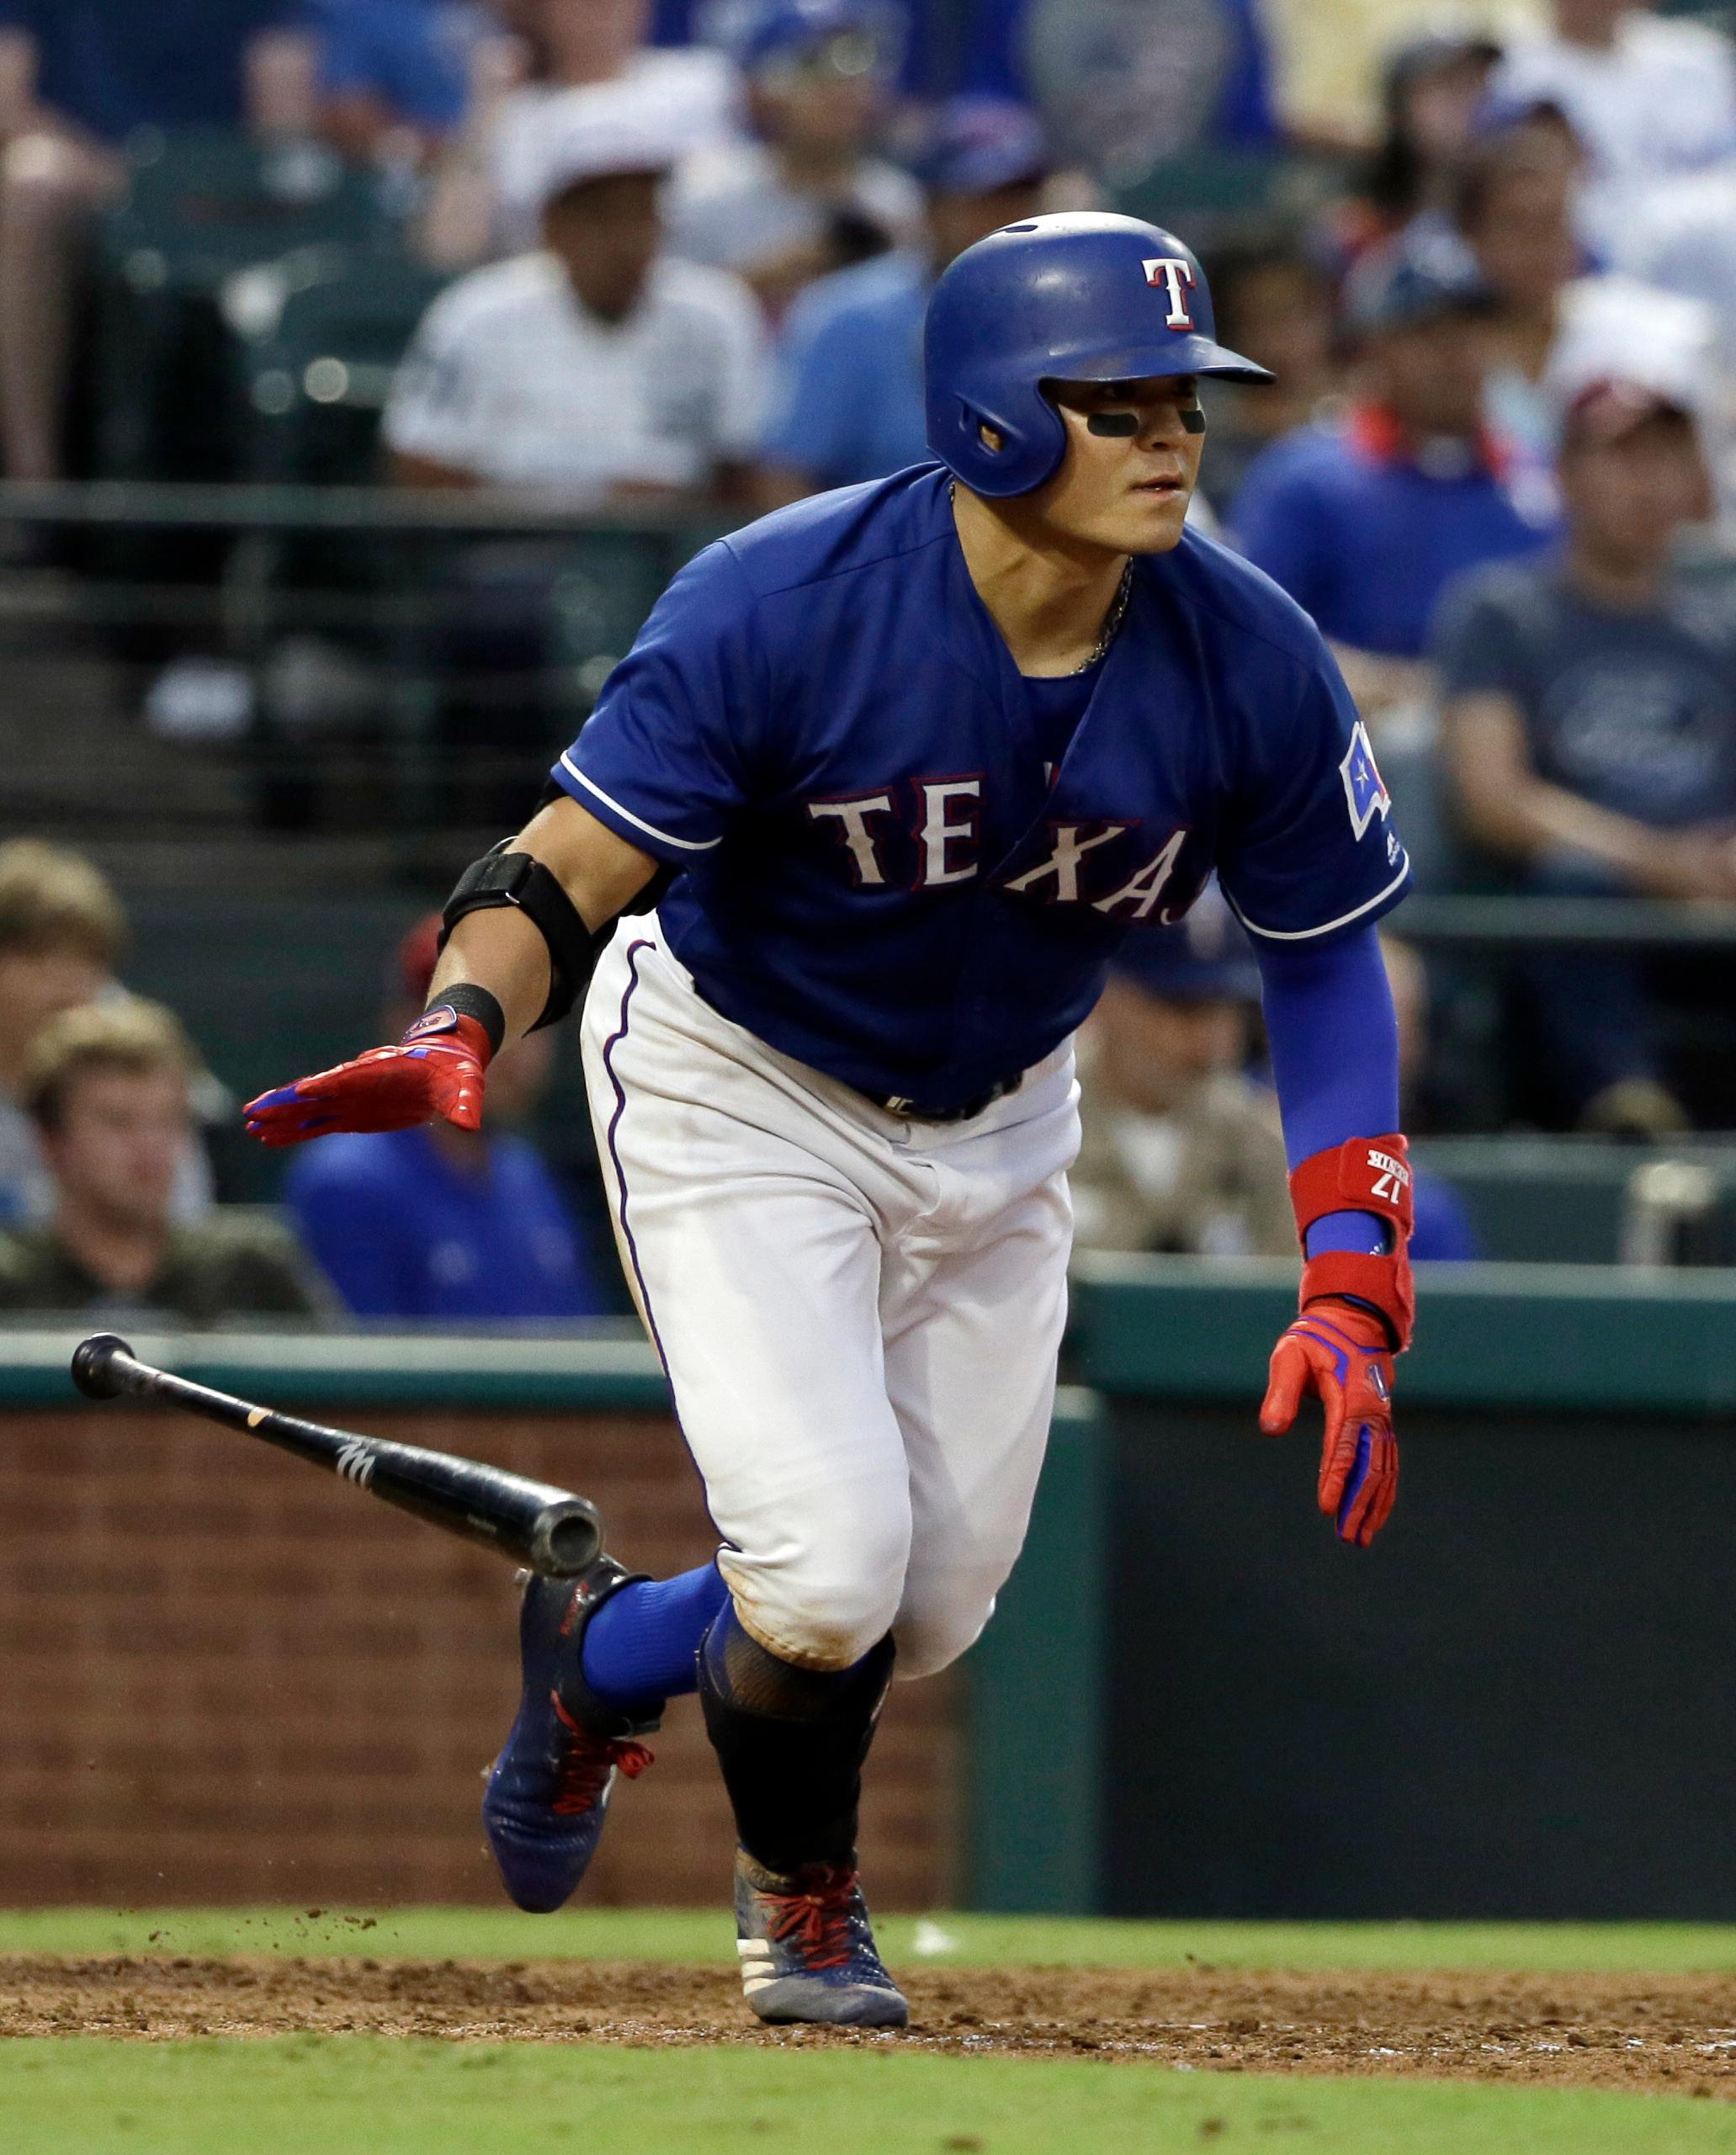 Texas Rangers' Shin-Soo Choo sprints to first after hitting a single to right off of Seattle Mariners starting pitcher Ariel Miranda during the fourth inning of a baseball game, Wednesday, Aug. 2, 2017, in Arlington, Texas. (AP Photo/Tony Gutierrez)